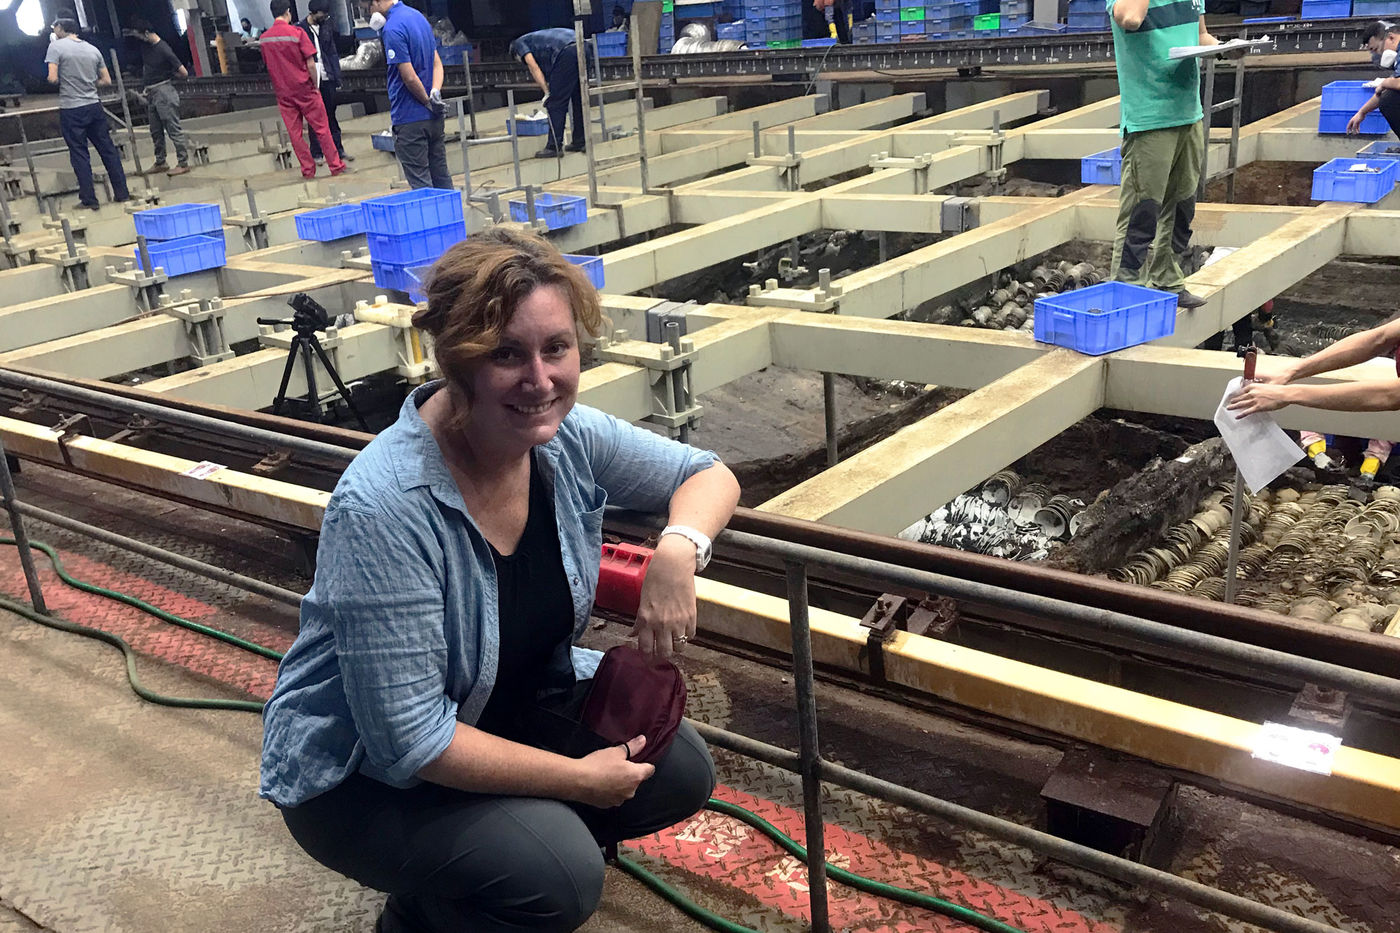 A woman poses in front of a large excavation site, where workers stand on a grid system of beams over the remains of a shipwreck. The nearest quadrants contain tightly stacked bowls.